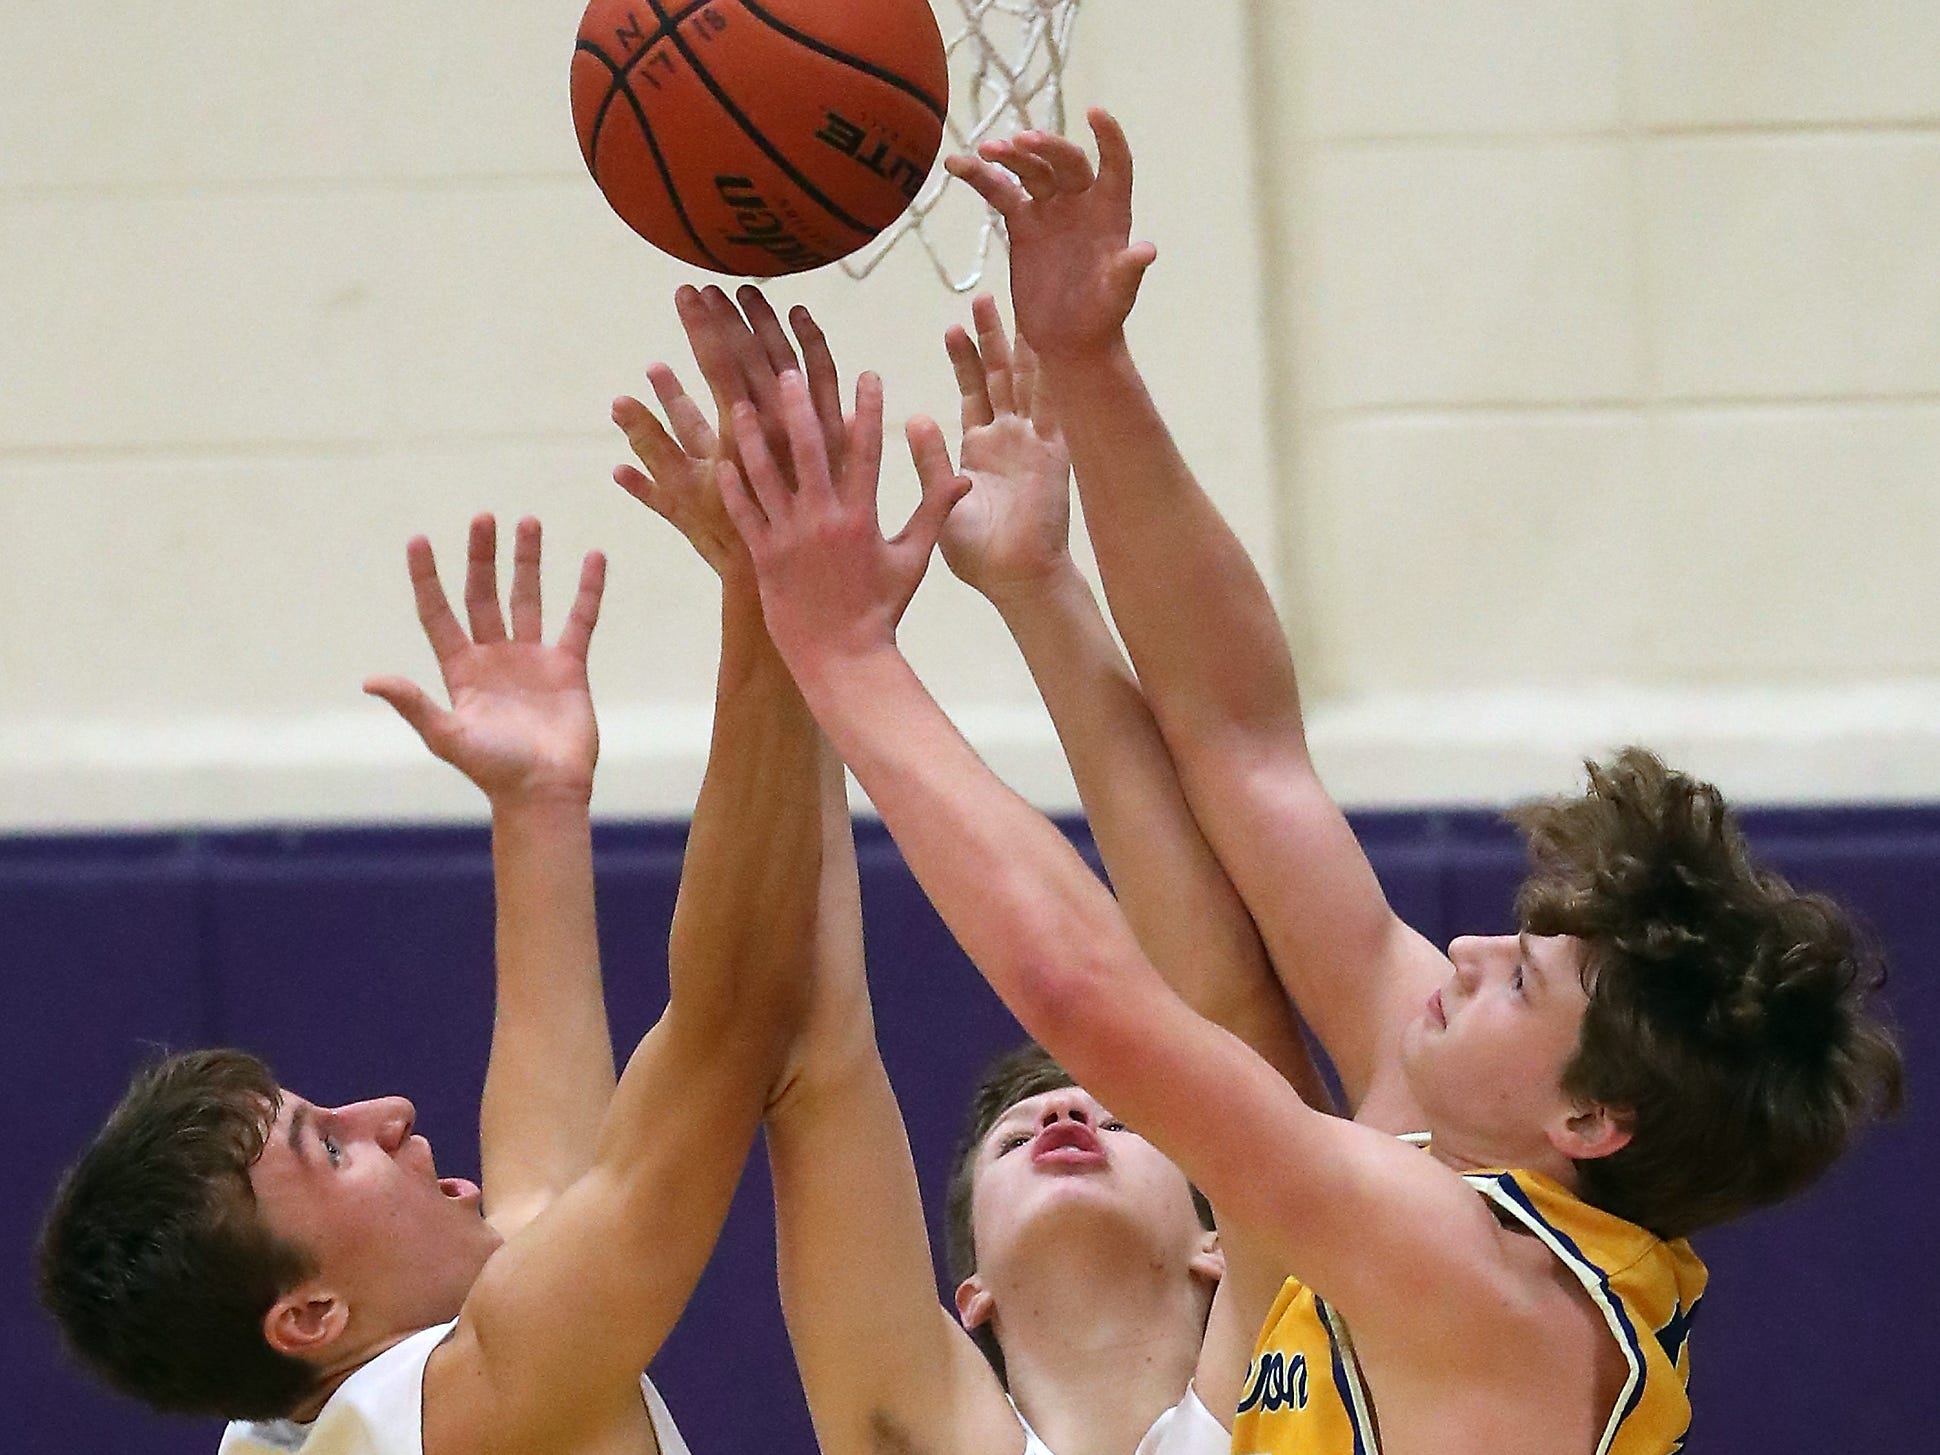 North Kitsap's Logan Chmielewski (21), Bobby Seibers (10) and Bremerton's Kaleb Peterson make a grab for a rebound during the first half of their game in Poulsbo on Wednesday, December 5, 2018.